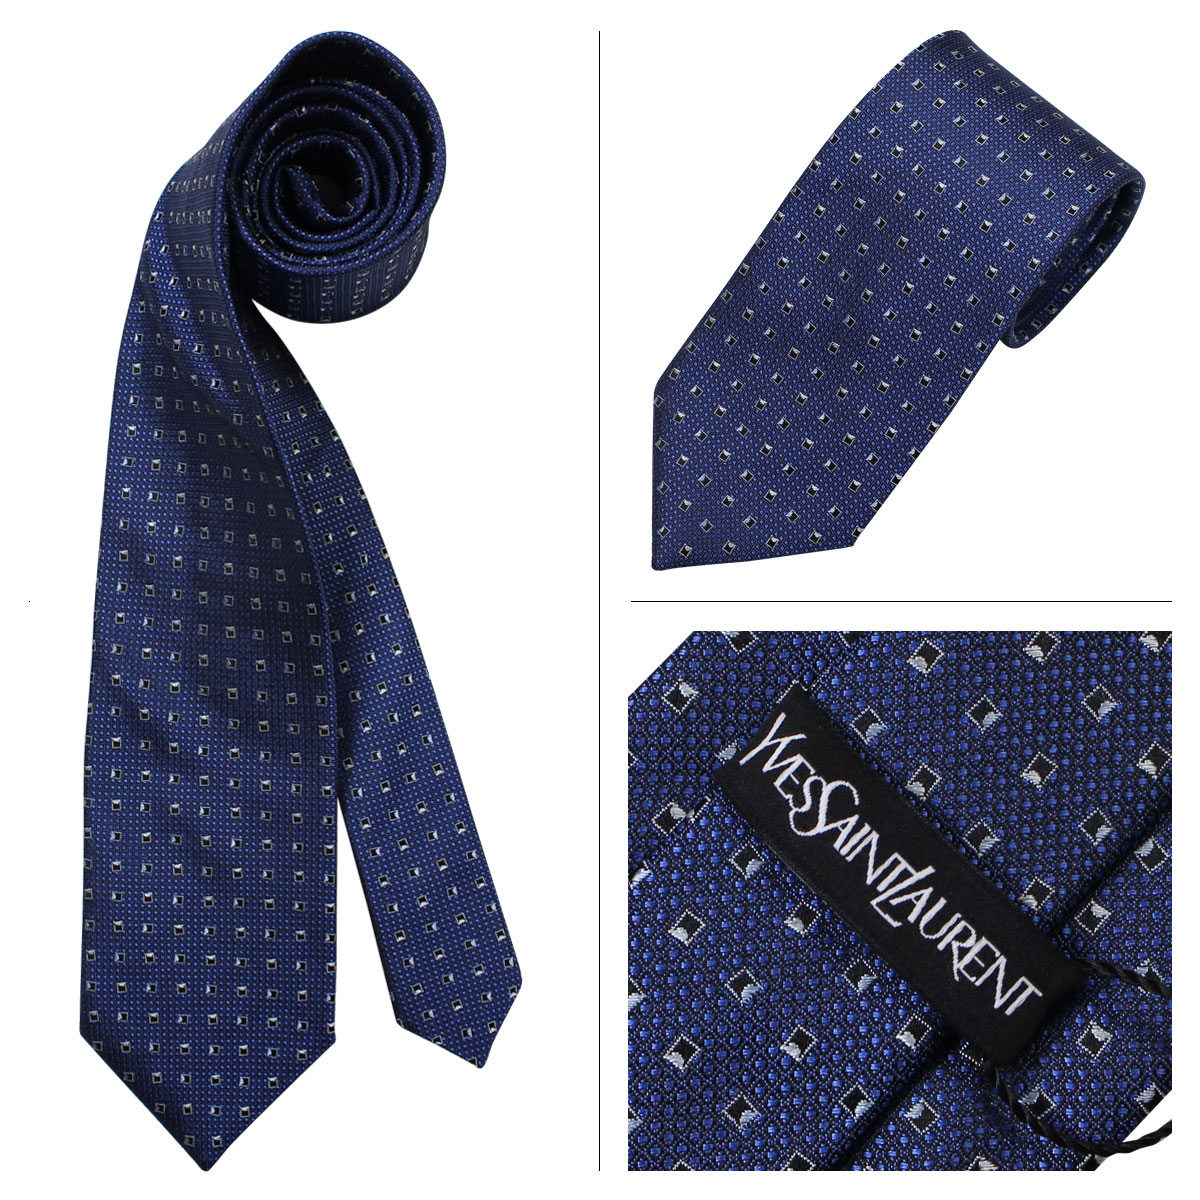 87cce224bd64e Yves Saint Laurent tie silk Yves Saint Laurent gift case with  France-business wedding mens  12   9 new in stock